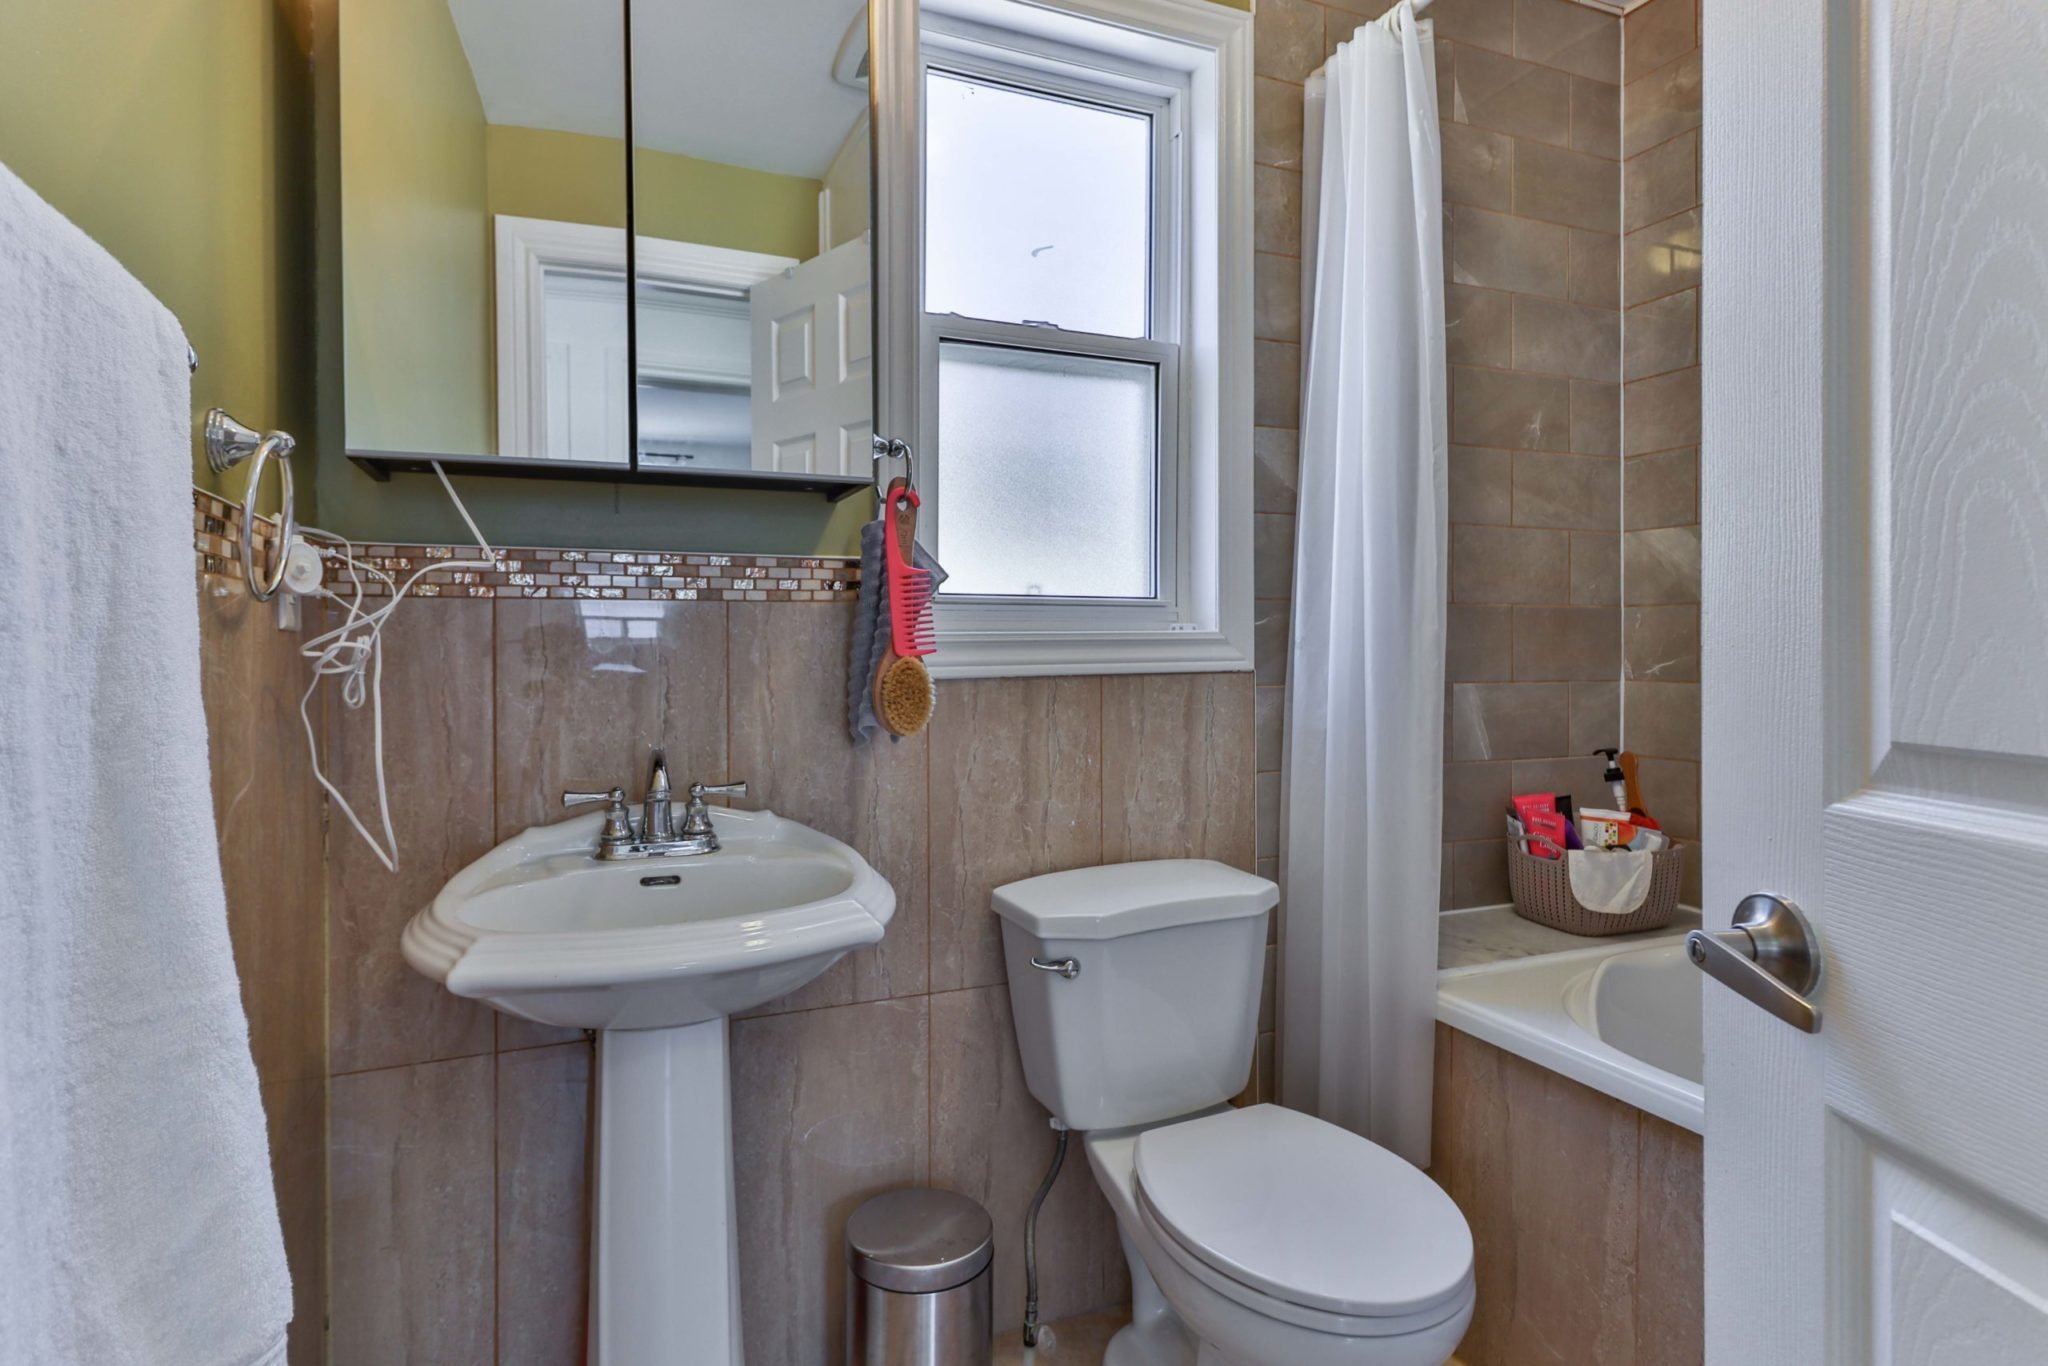 Newly renovated bathroom with beige-brown tiles, white sink, toilet and soaker tub.